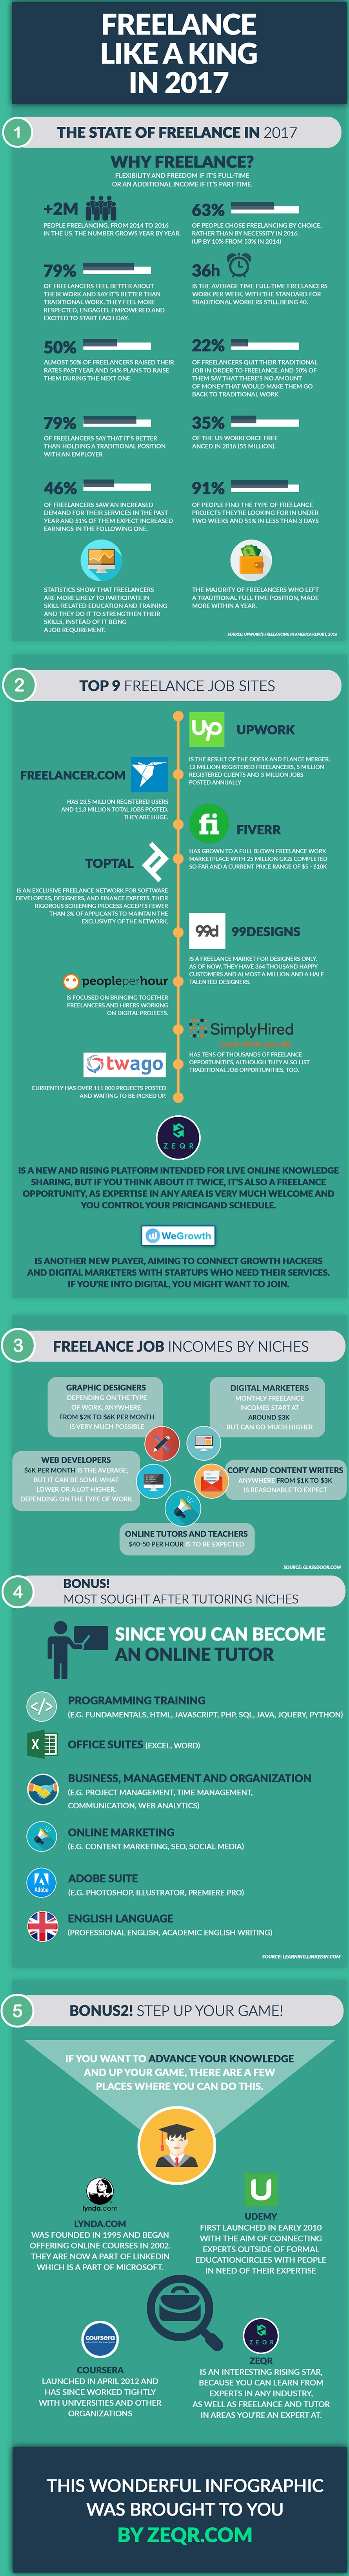 Freelance Like A King In 2017 - #Infographic